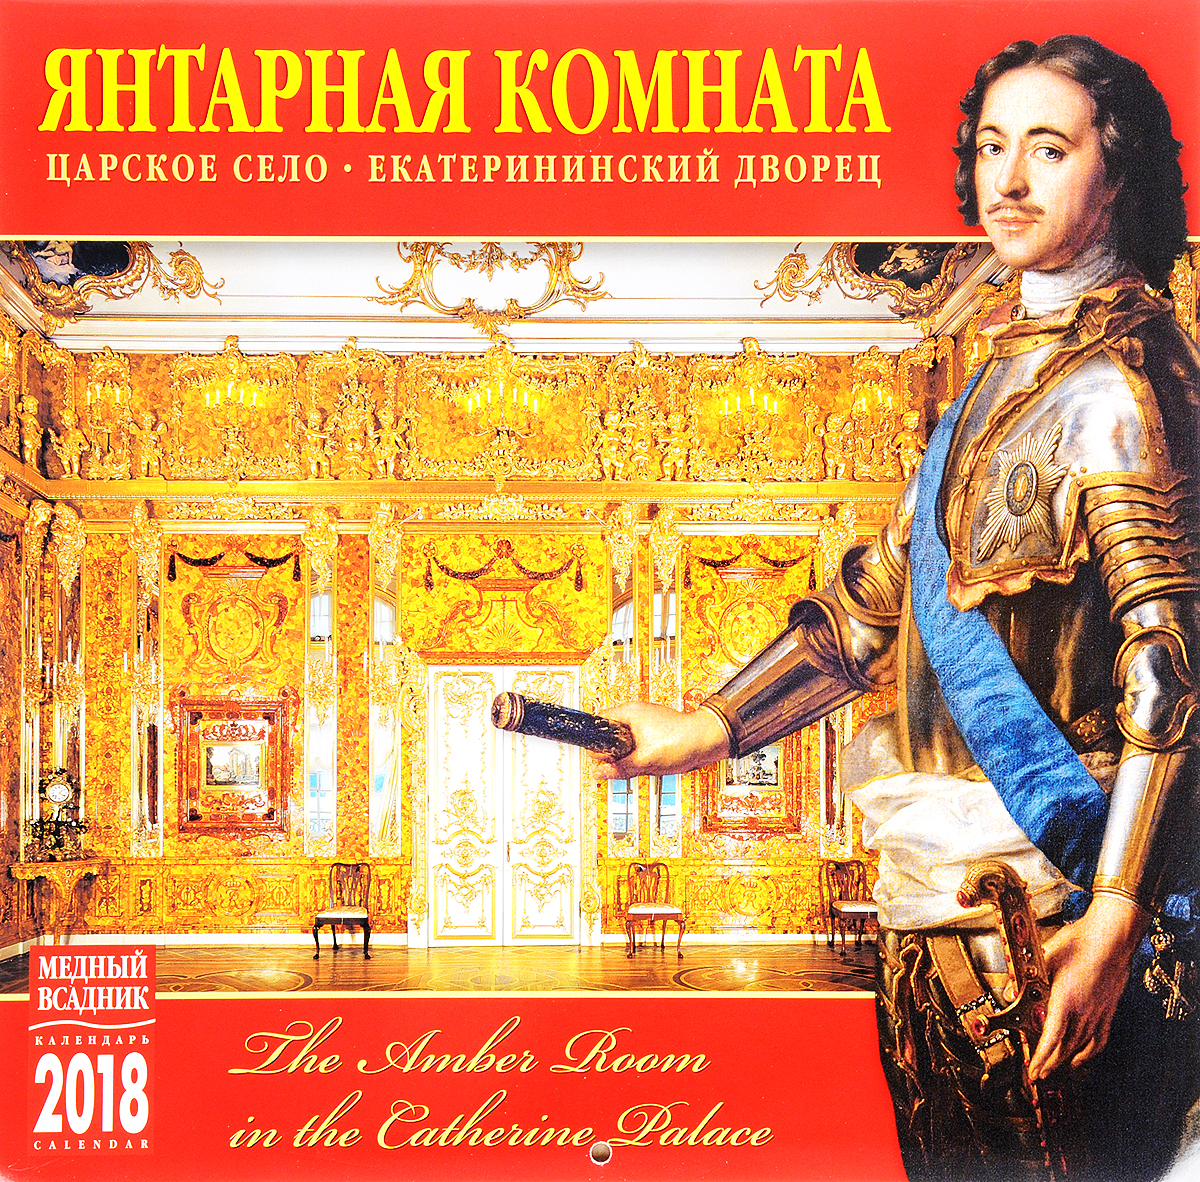 Календарь 2018 (на скрепке). Янтарная комната / The Amber Room in the Catherine Palace catherine ca073awidj81